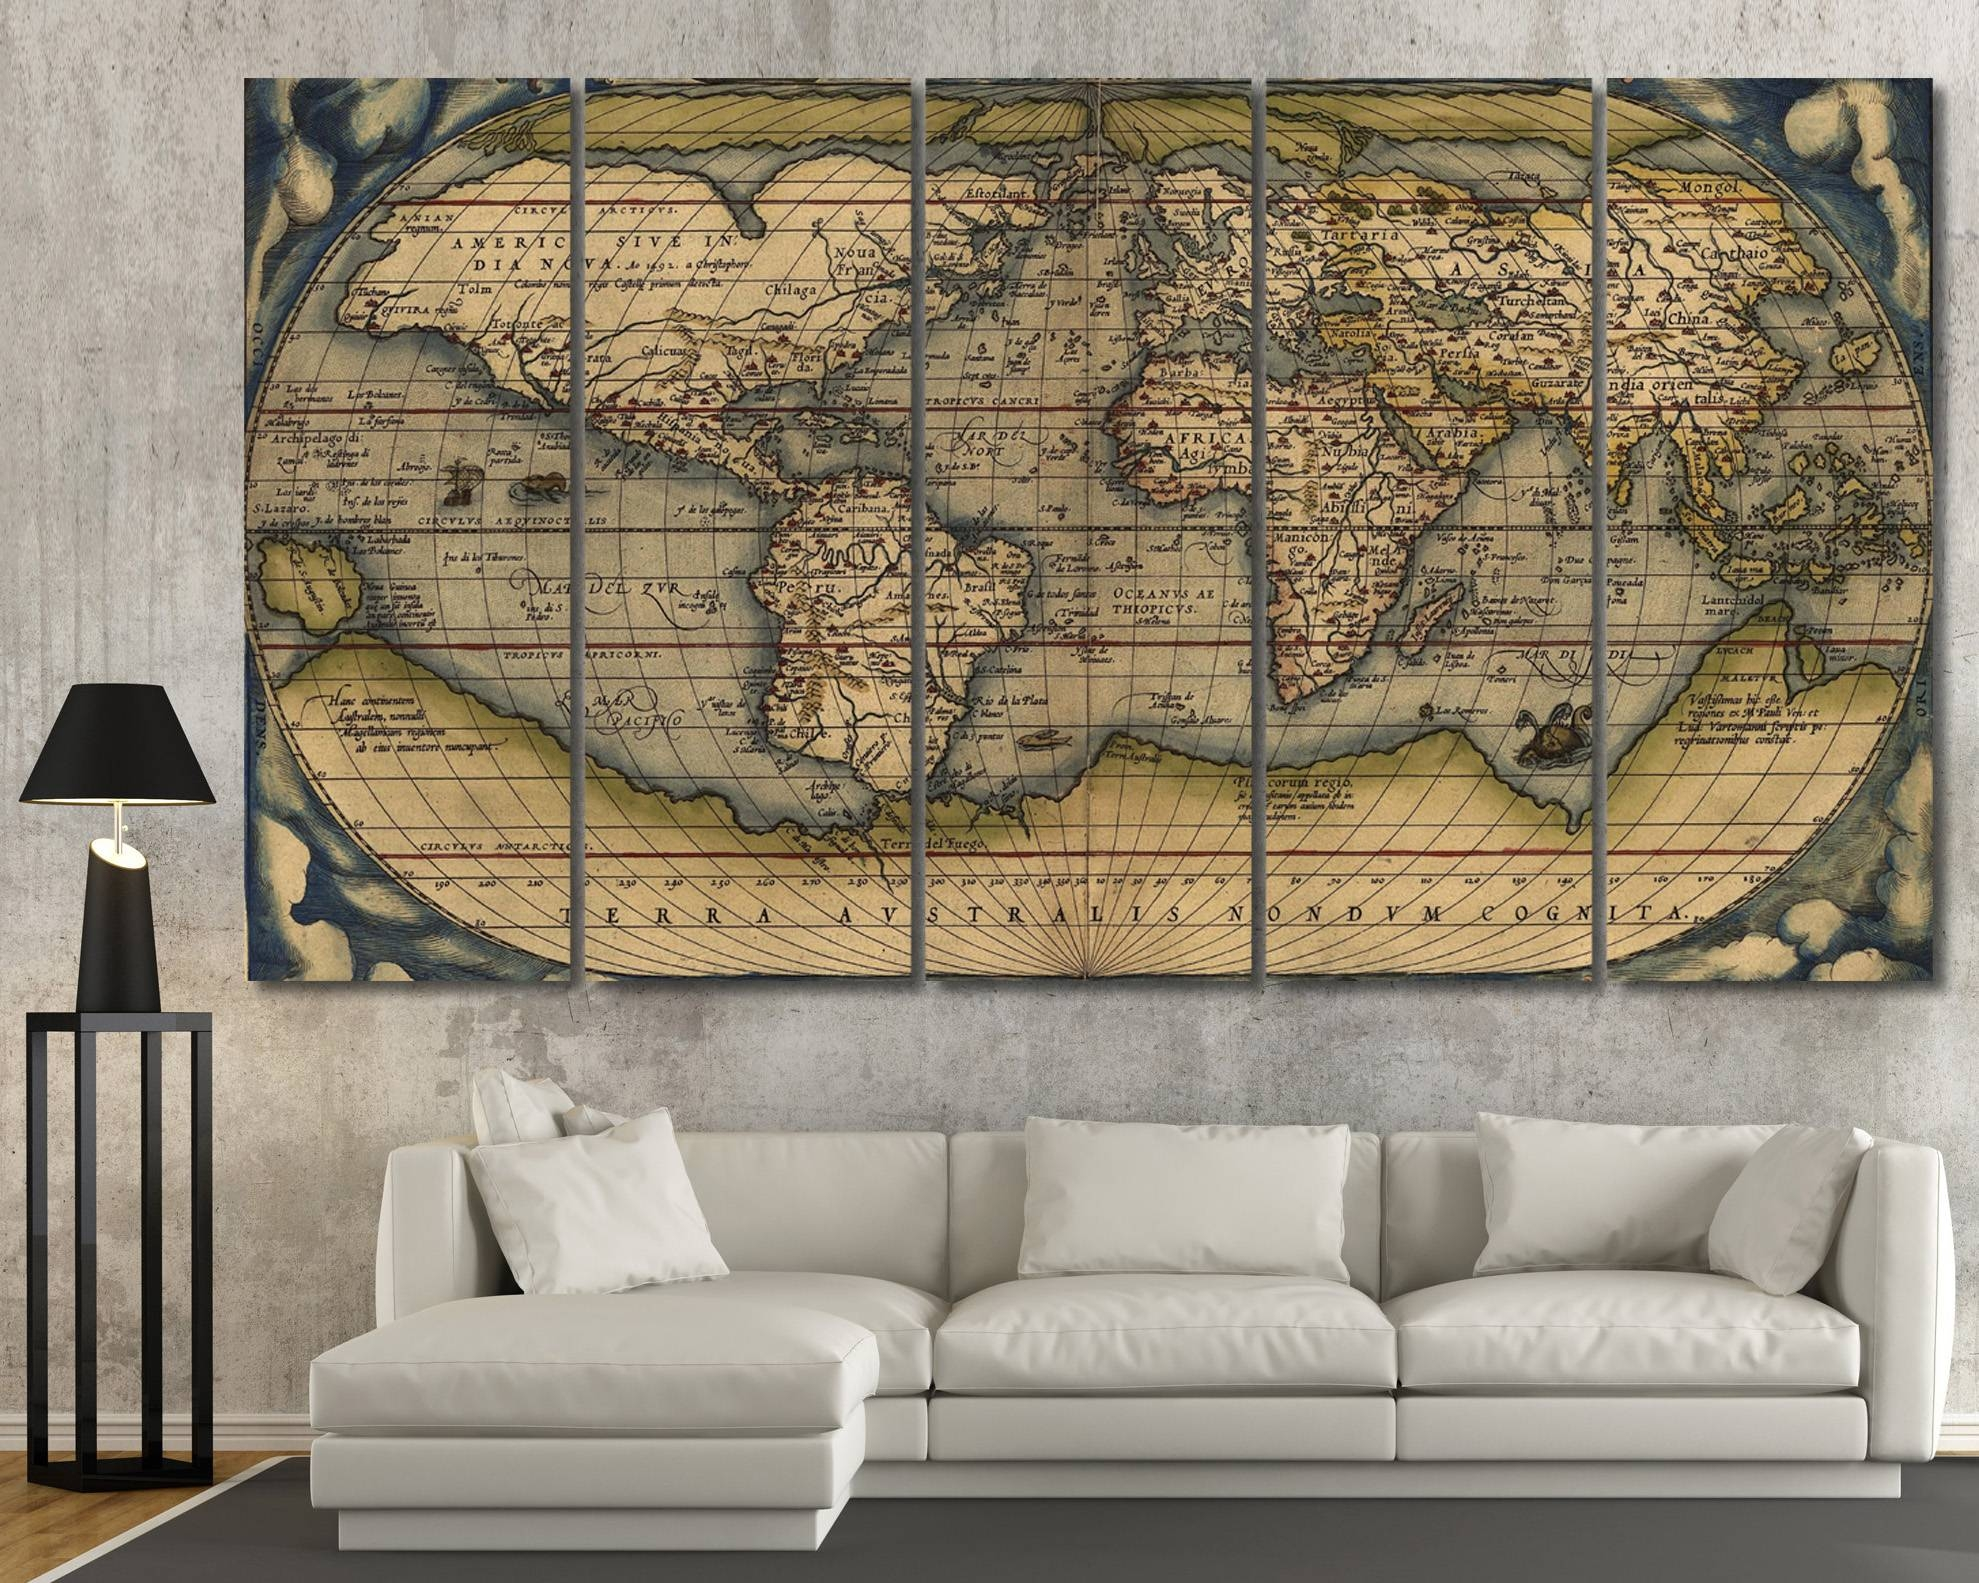 Large Vintage Wall Art Old World Map At Texelprintart Throughout Most Recently Released Map Wall Art (View 10 of 25)